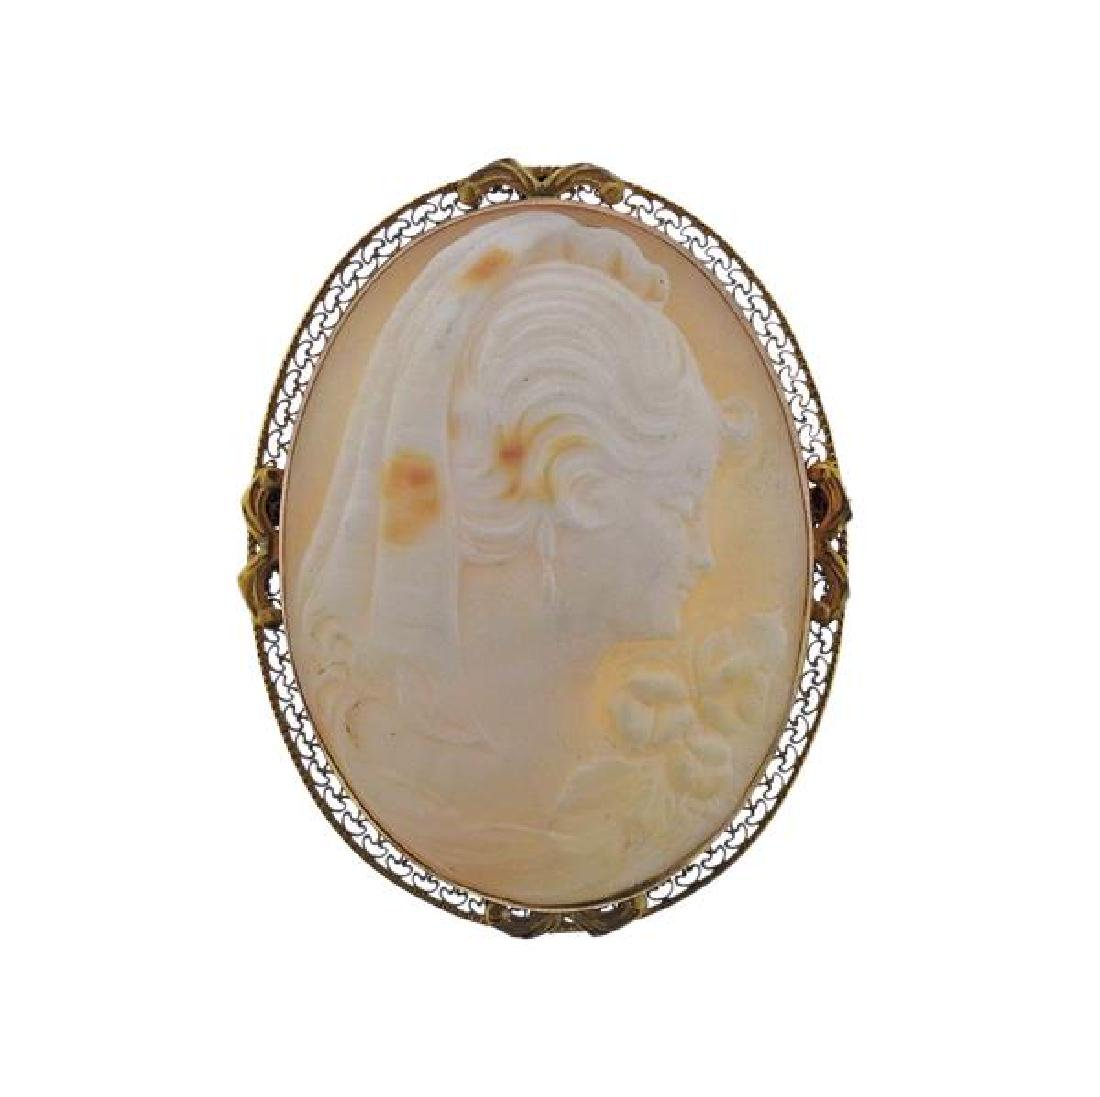 10K Gold Shell Cameo Brooch Pendant